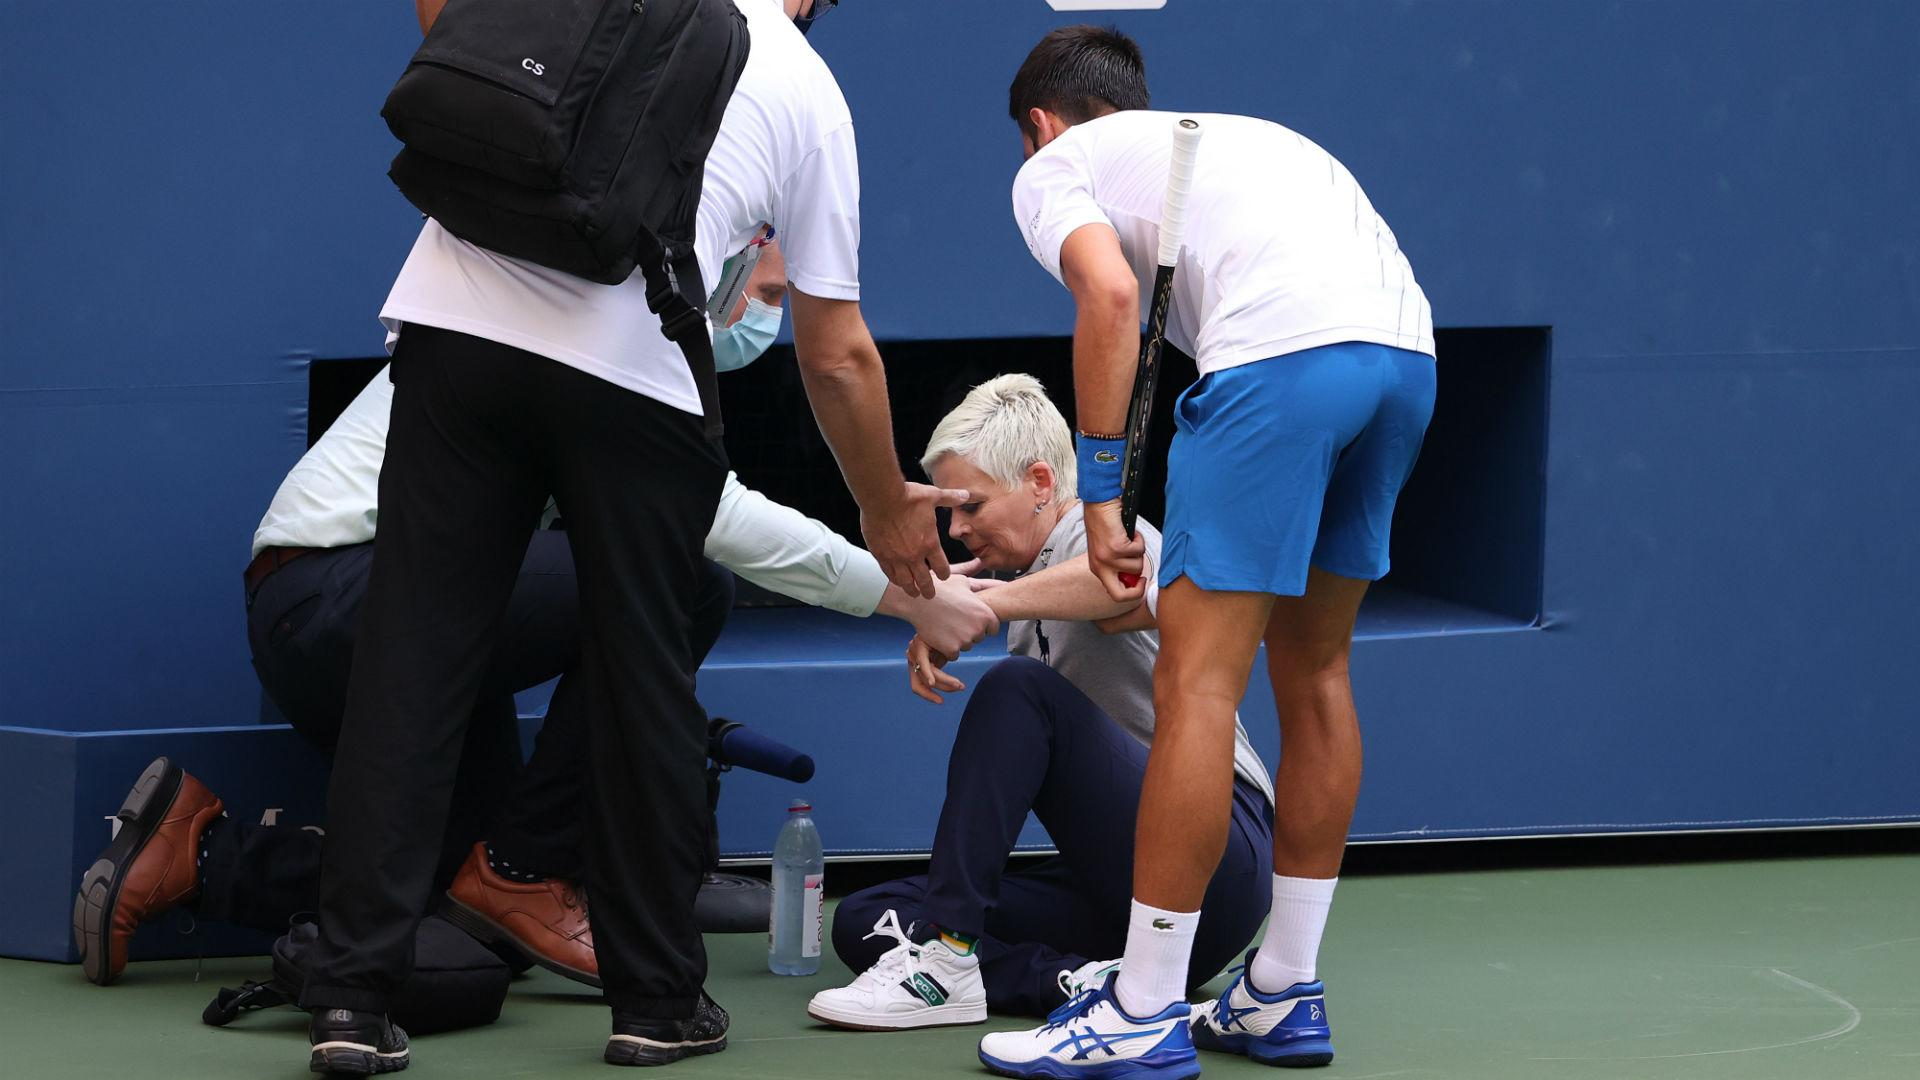 Us Open 2020 Djokovic Defaulted For Hitting Linesperson With Ball